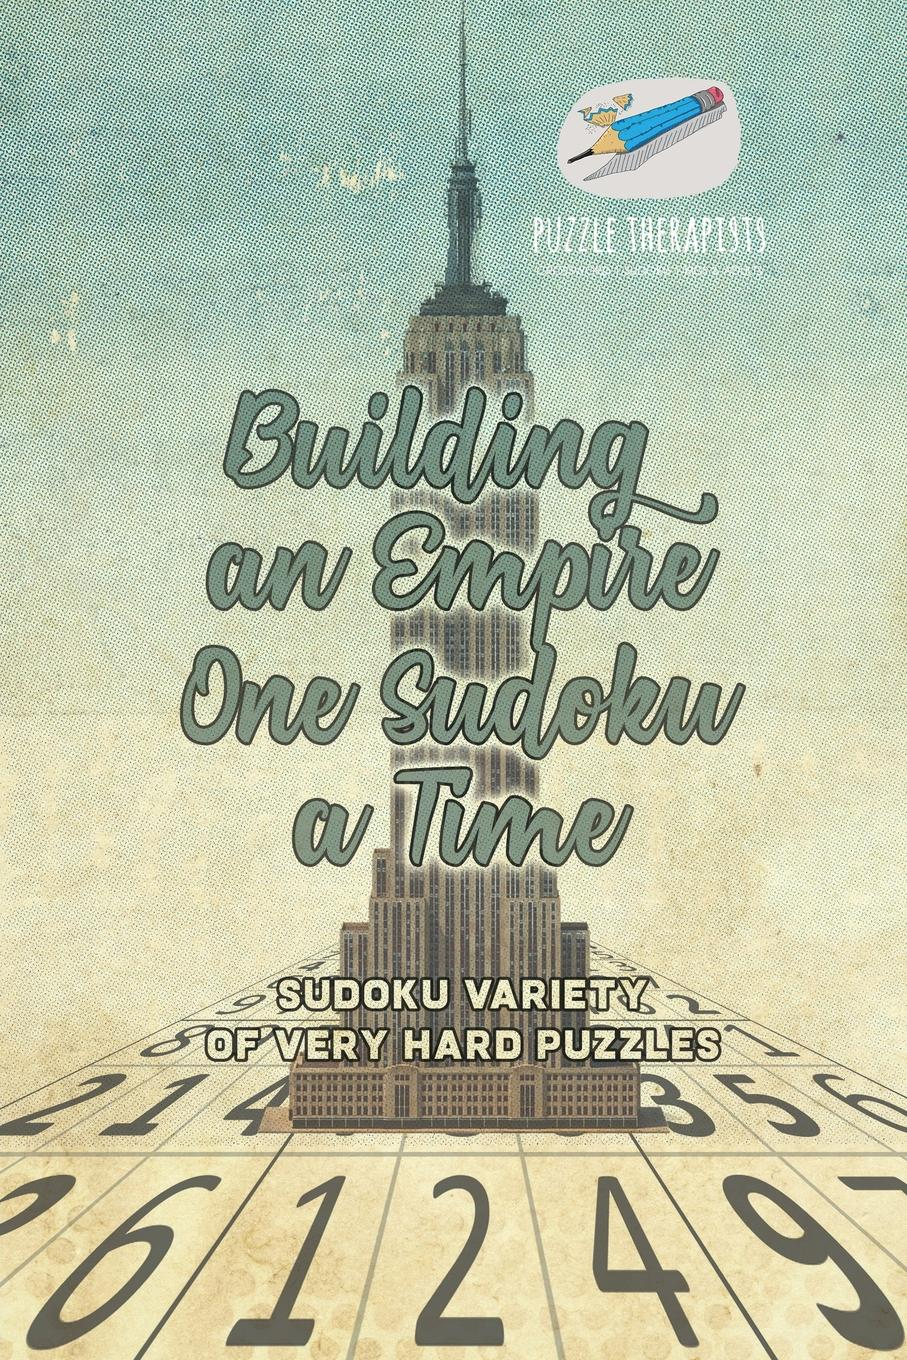 Puzzle Therapist Building an Empire One Sudoku a Time . Sudoku Variety of Very Hard Puzzles puzzle therapist the number addict s book of hard to extreme sudoku 200 challenging sudoku puzzles